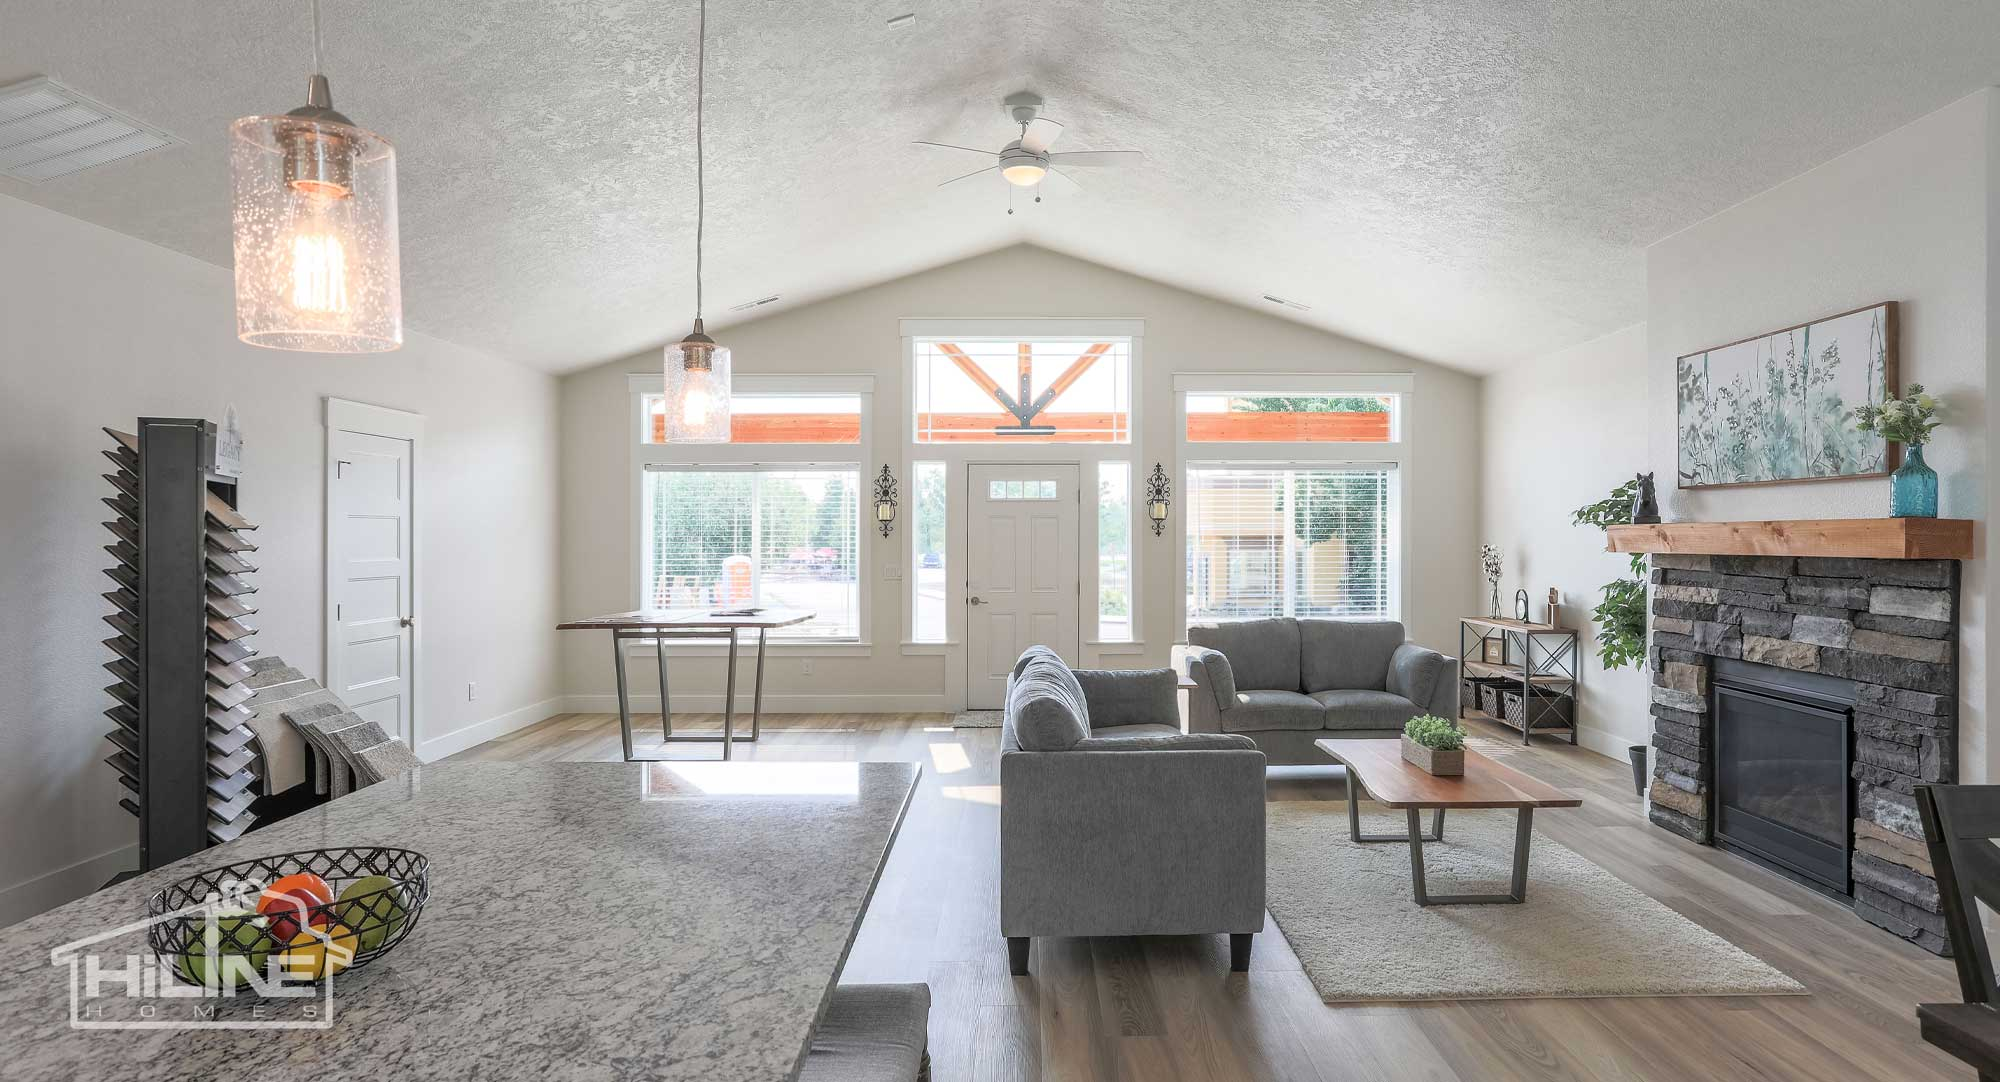 Image of HiLine Homes of Meridian Great Room